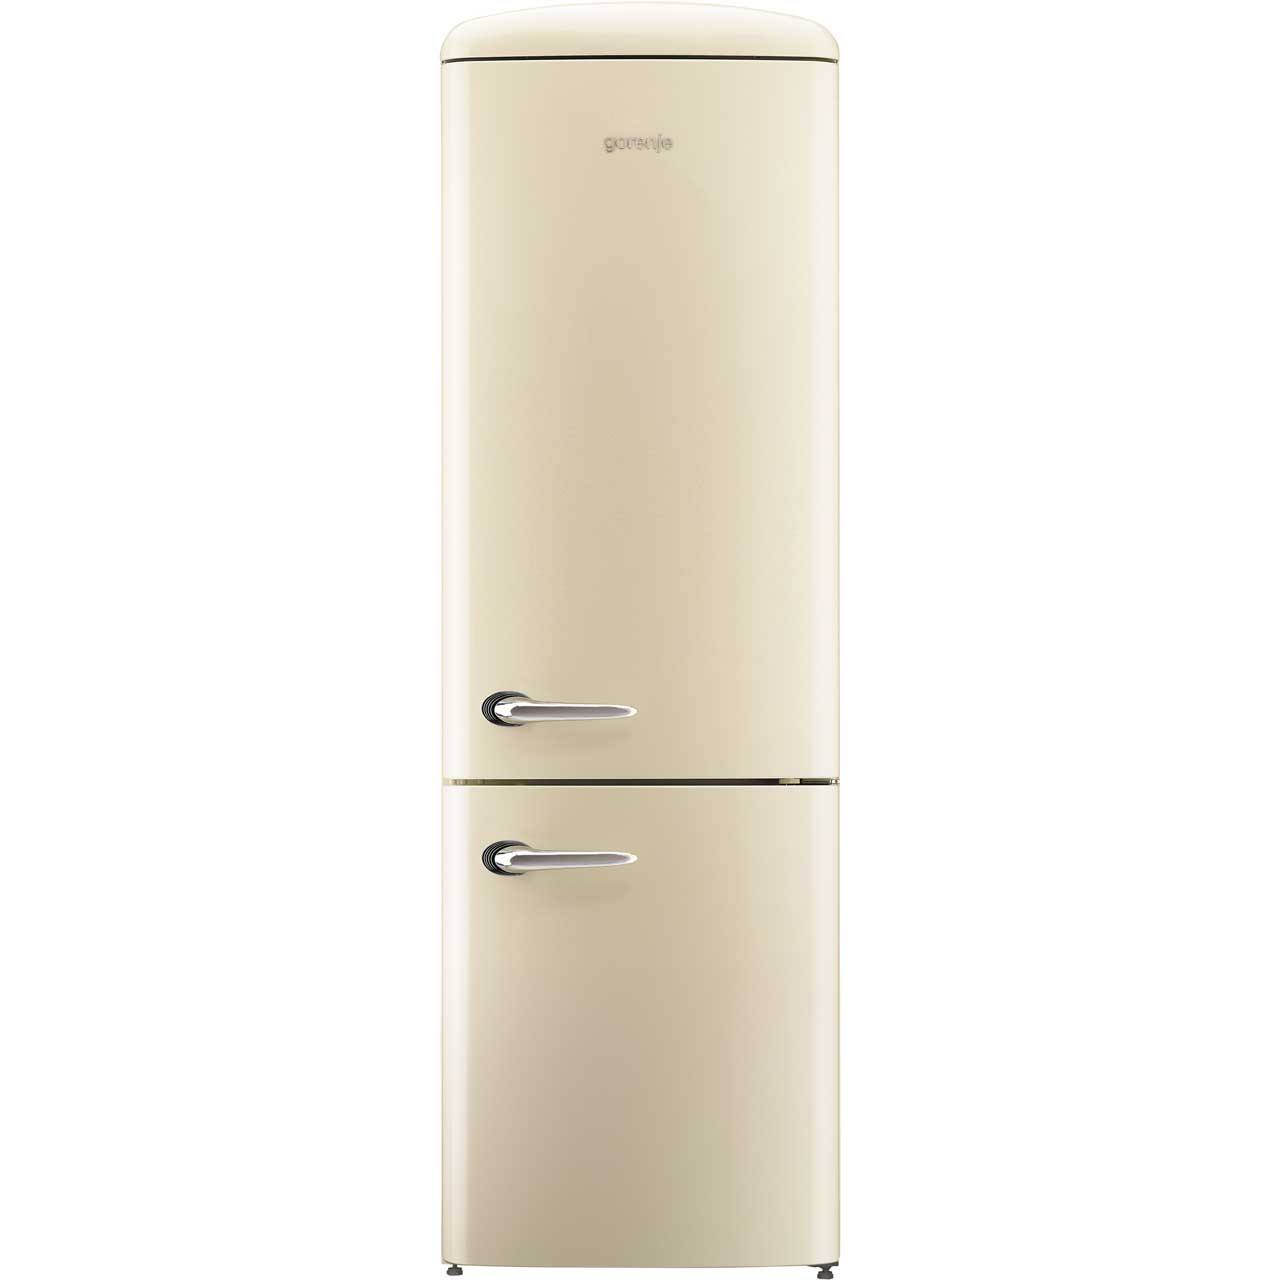 Gorenje Retro Collection NRKO6193C Free Standing Fridge Freezer Frost Free in Cream